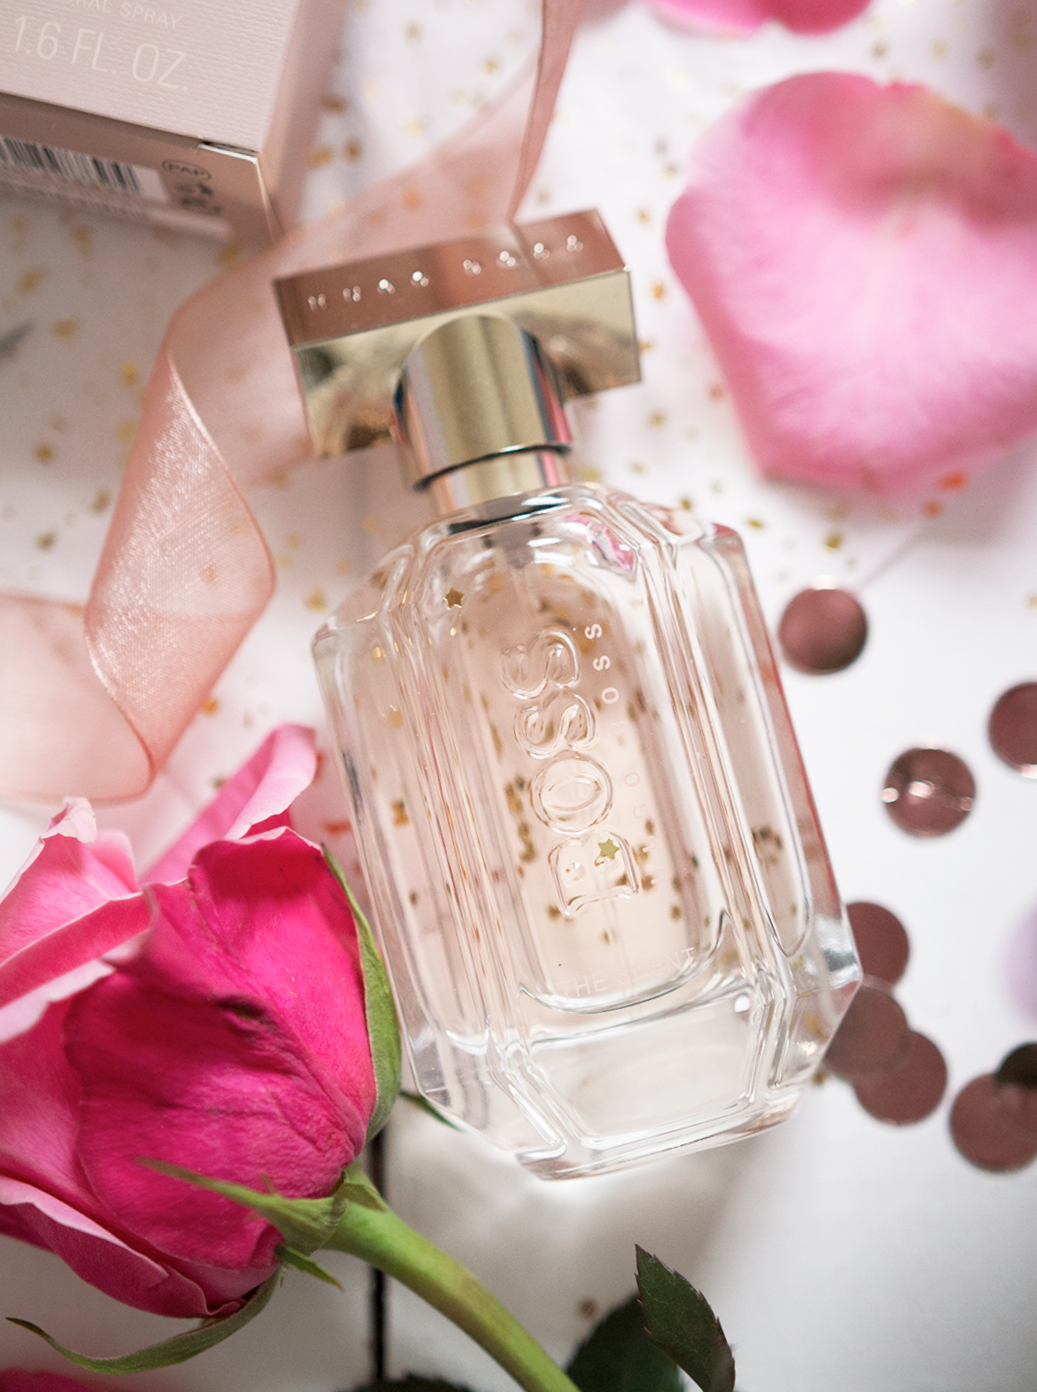 fragrance direct perfume fragrance mother's day gift